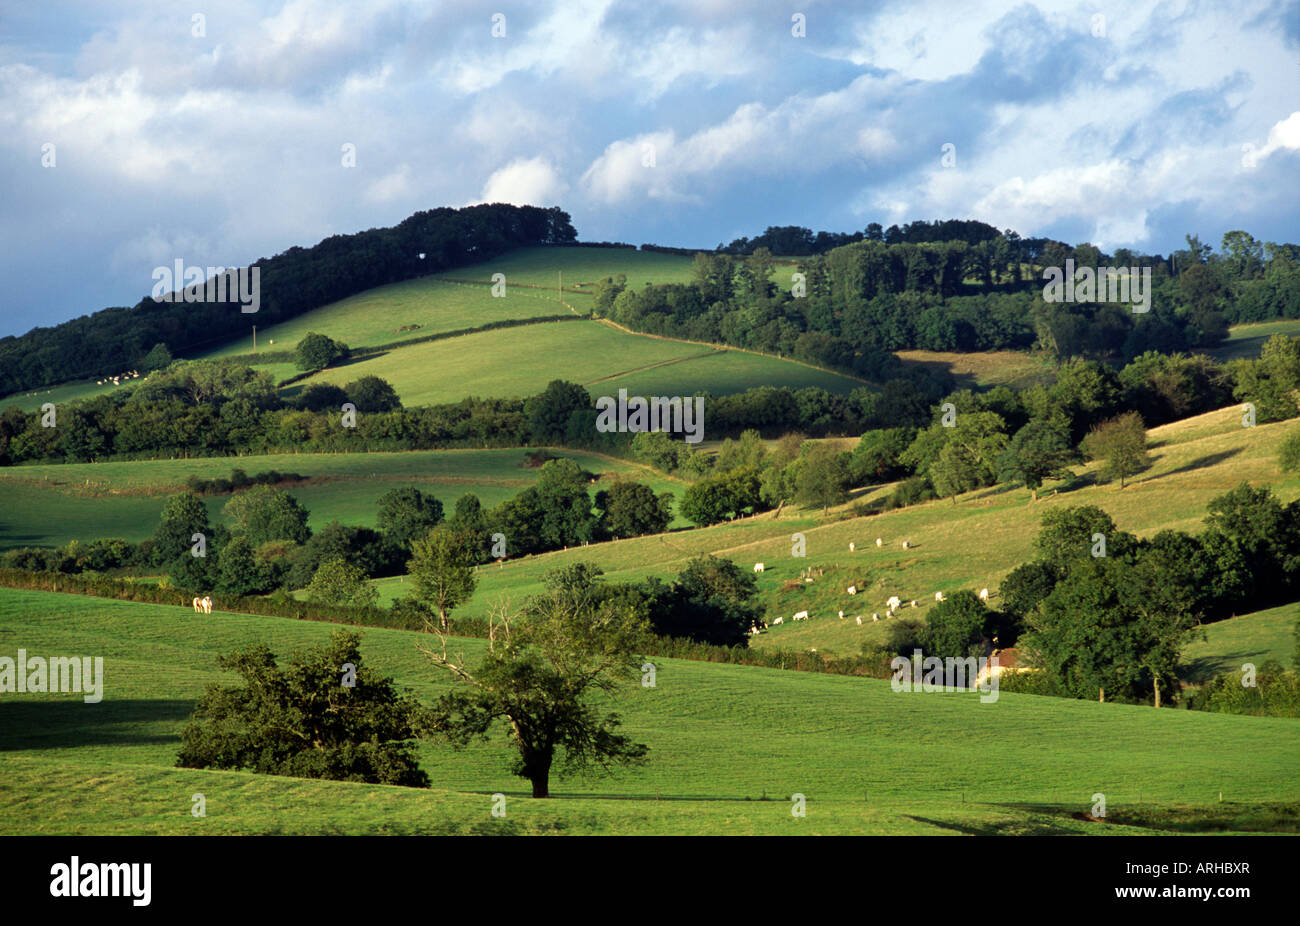 French Countryside In The Limoges Region Central France